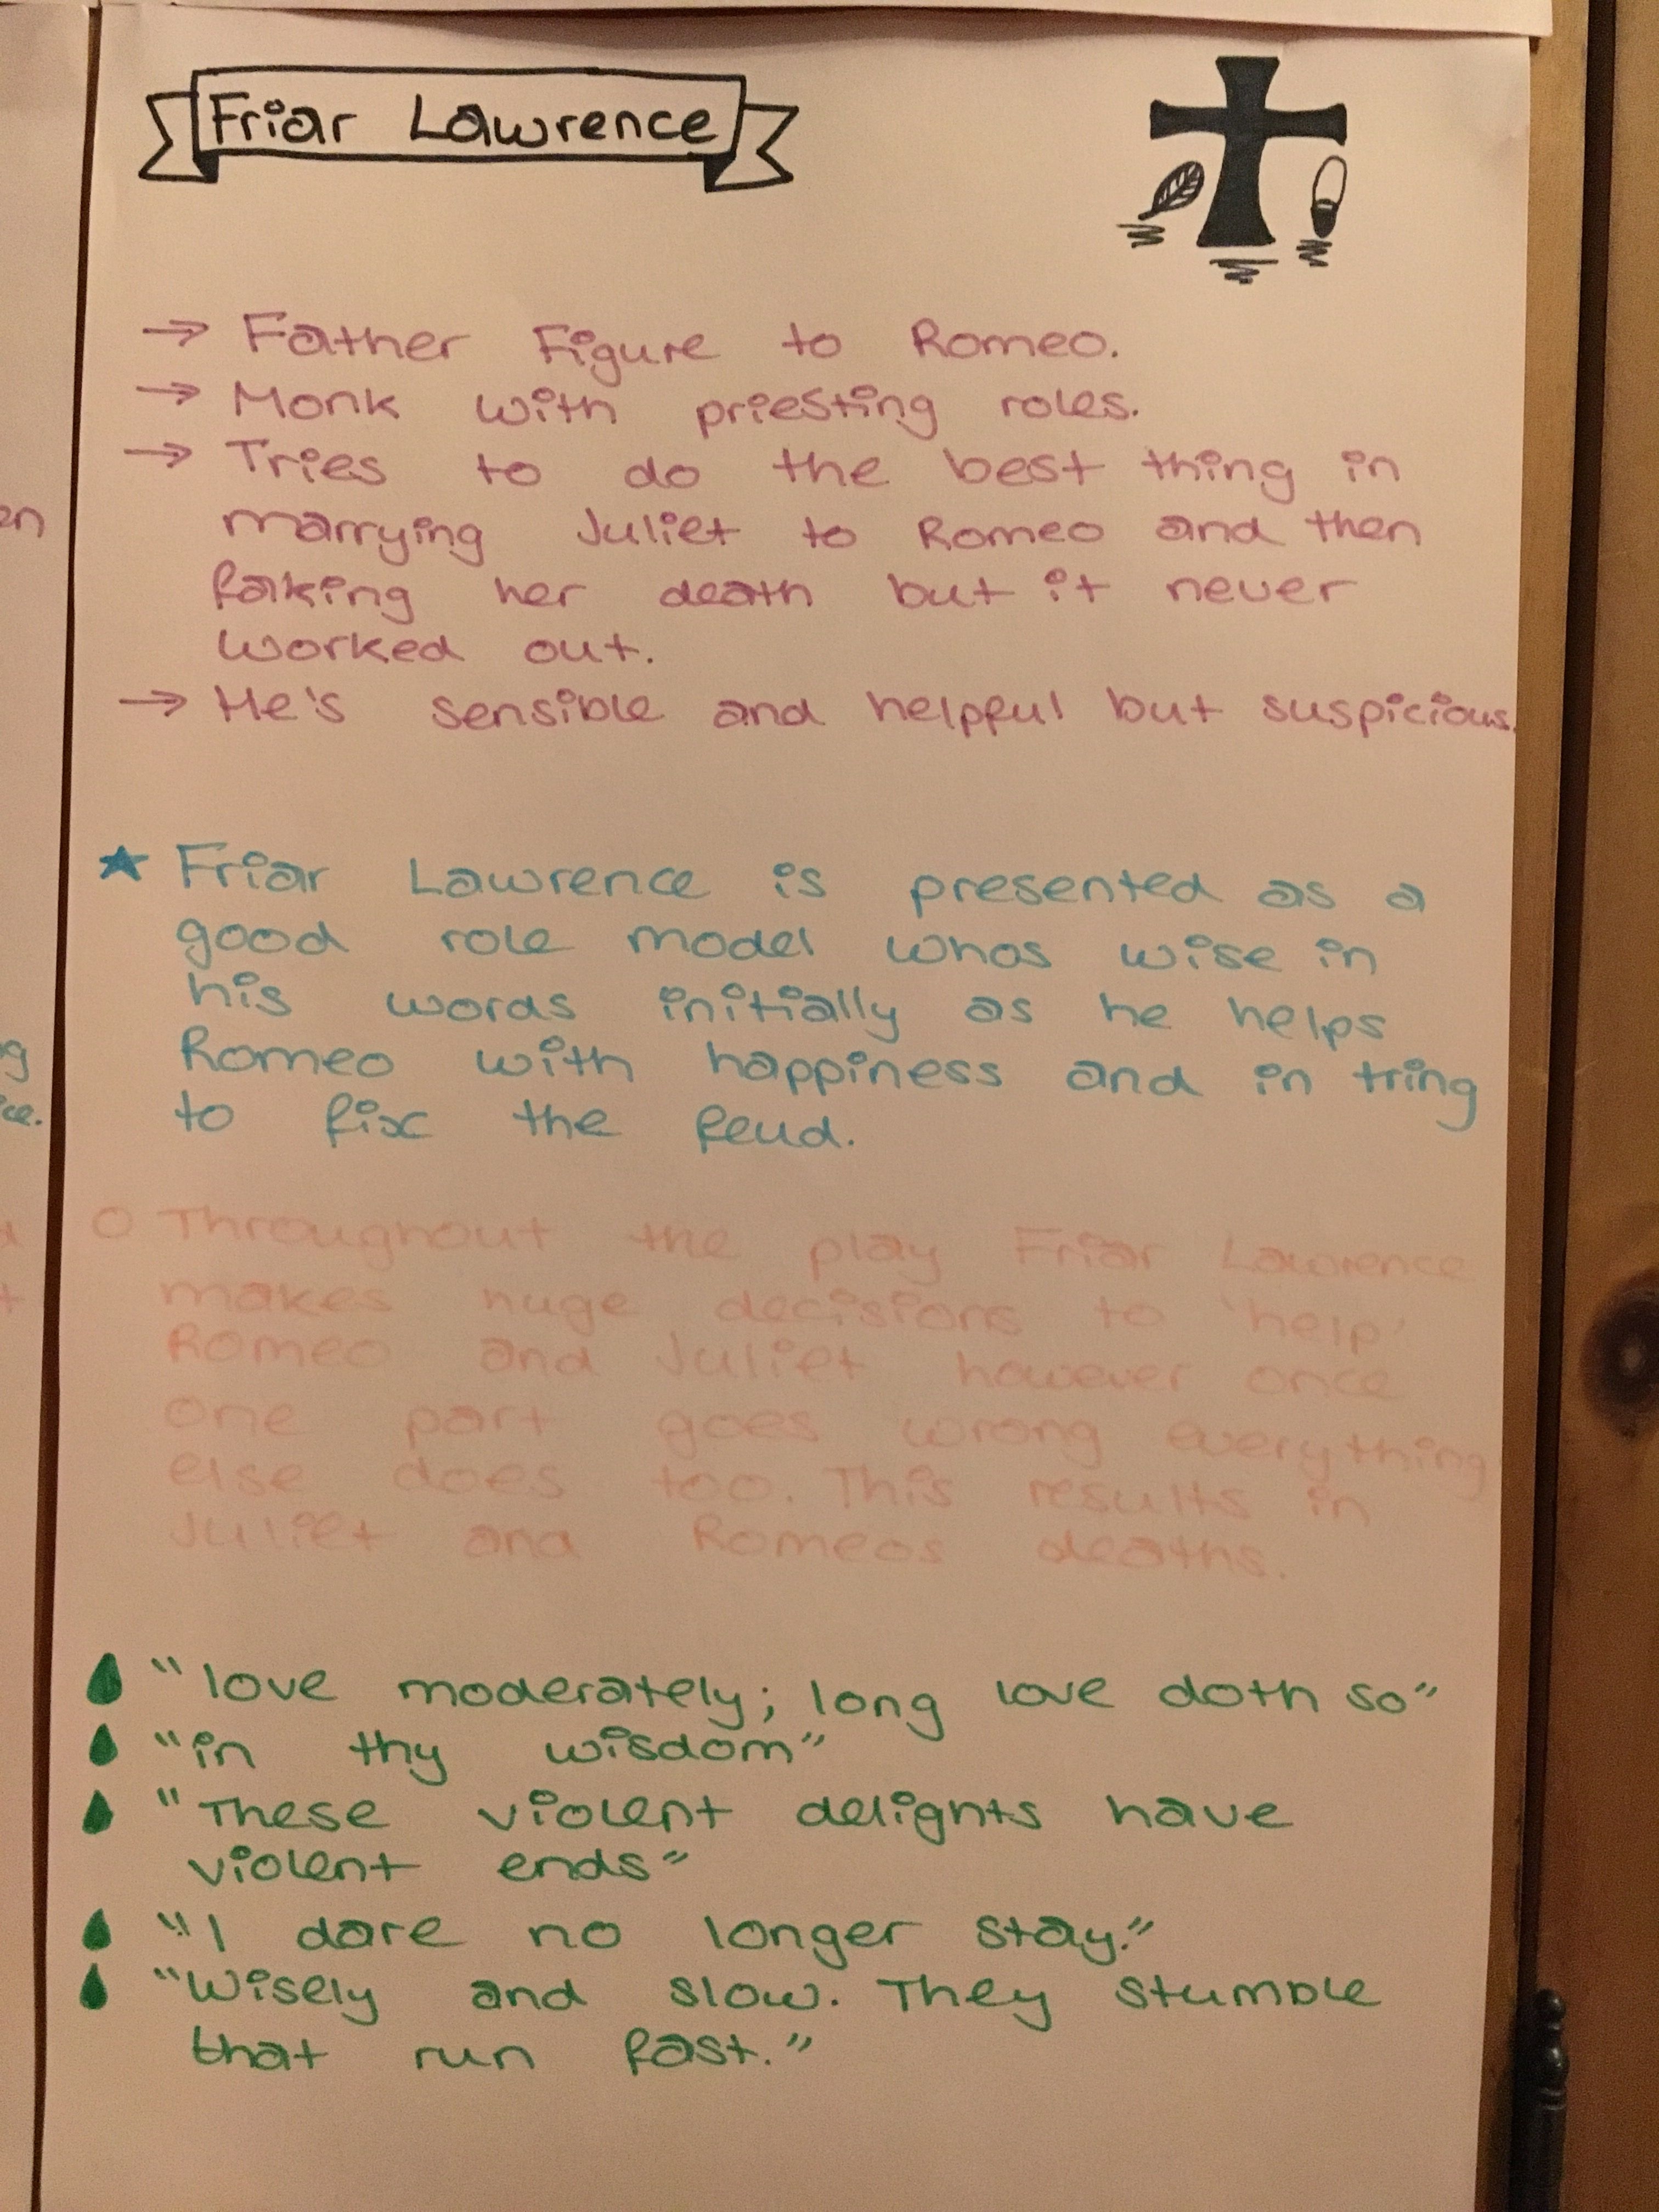 Friar Lawrence Romeo And Juliet Quote Gcse Revision English Soliloquy Summary